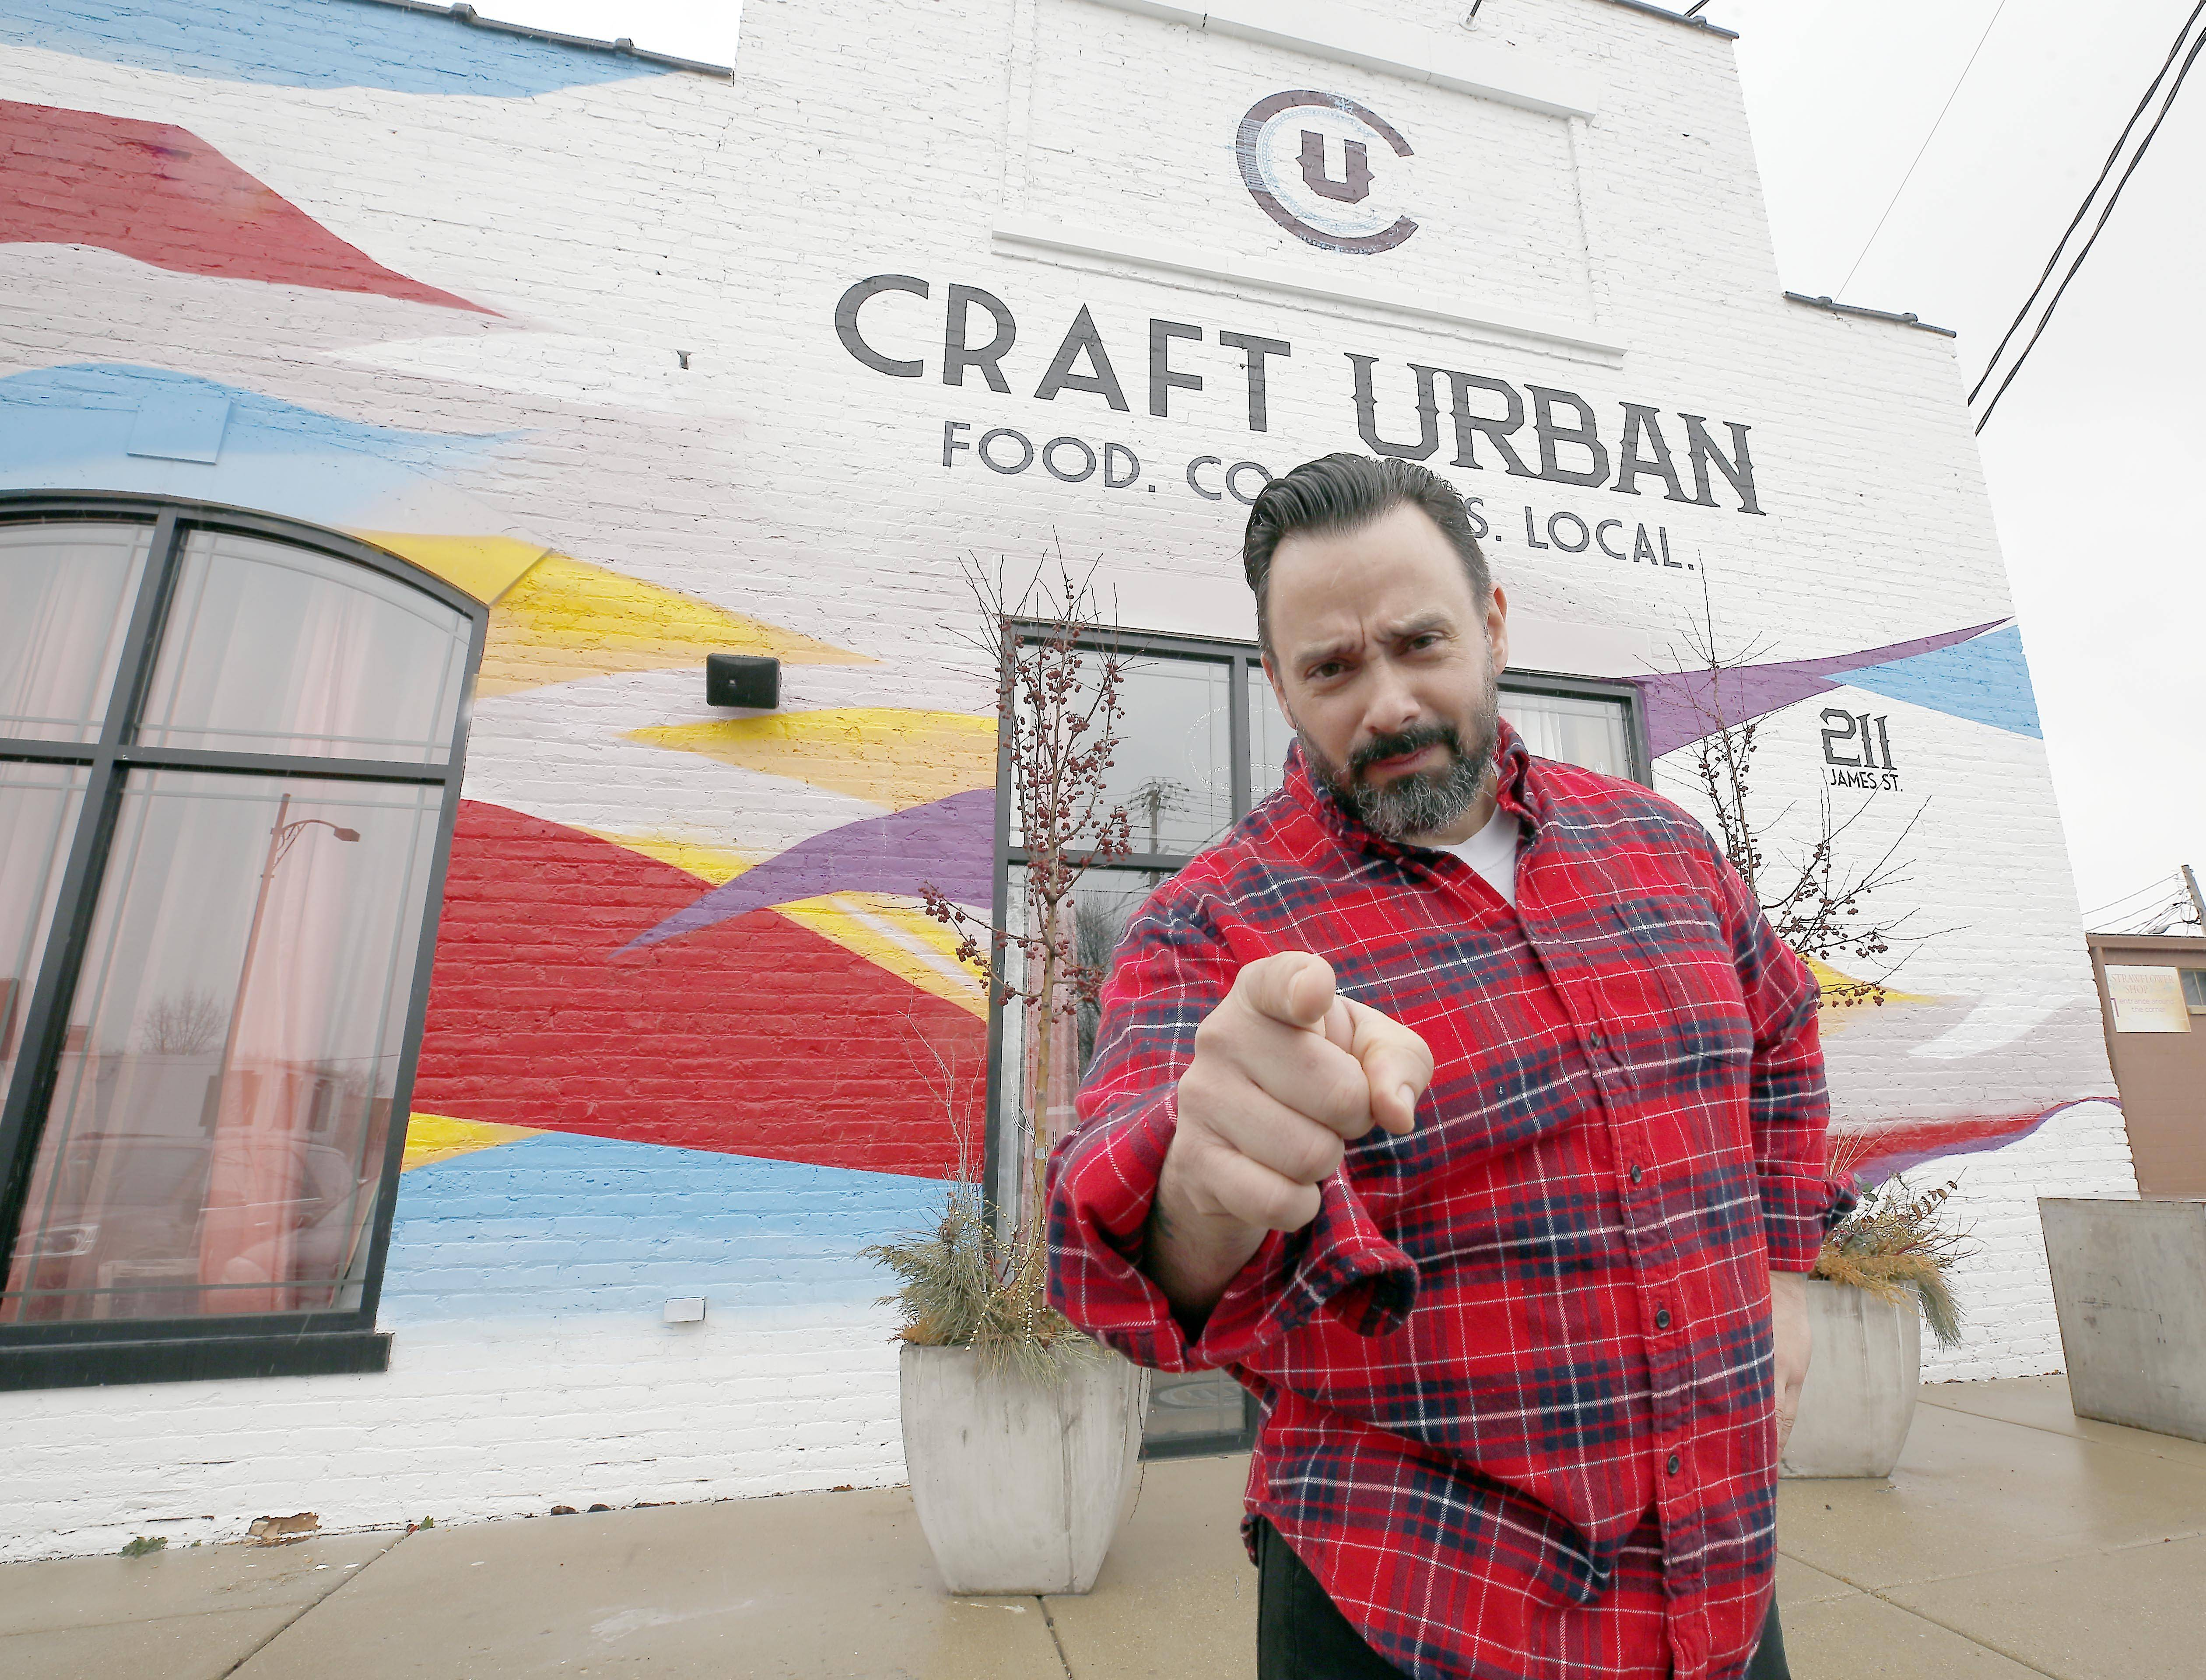 Owner and chef Bernie Laskowski brings 25 years of restaurant experience to Craft Urban in Geneva.